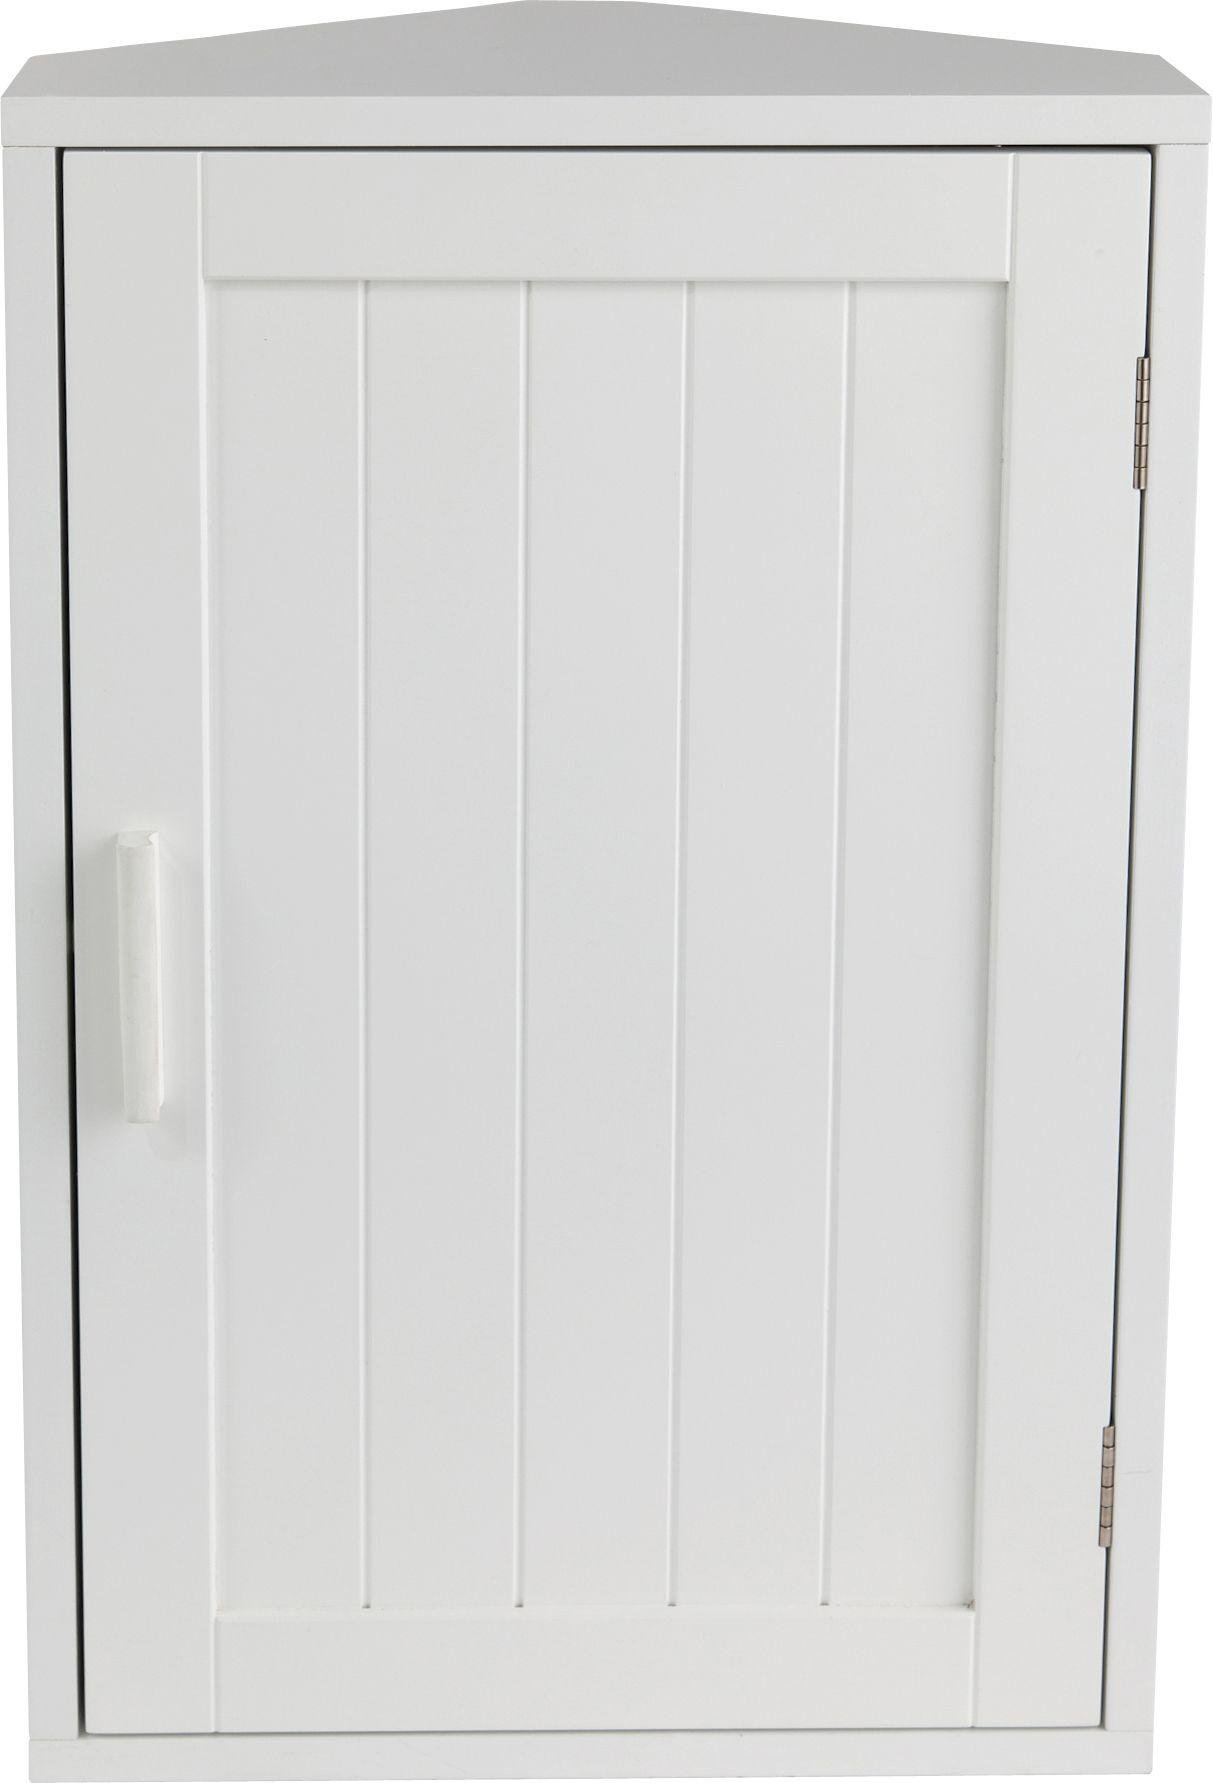 NEW HOME Wooden Corner Bathroom Cabinet Corner Cabinet Perfect For The White_UK